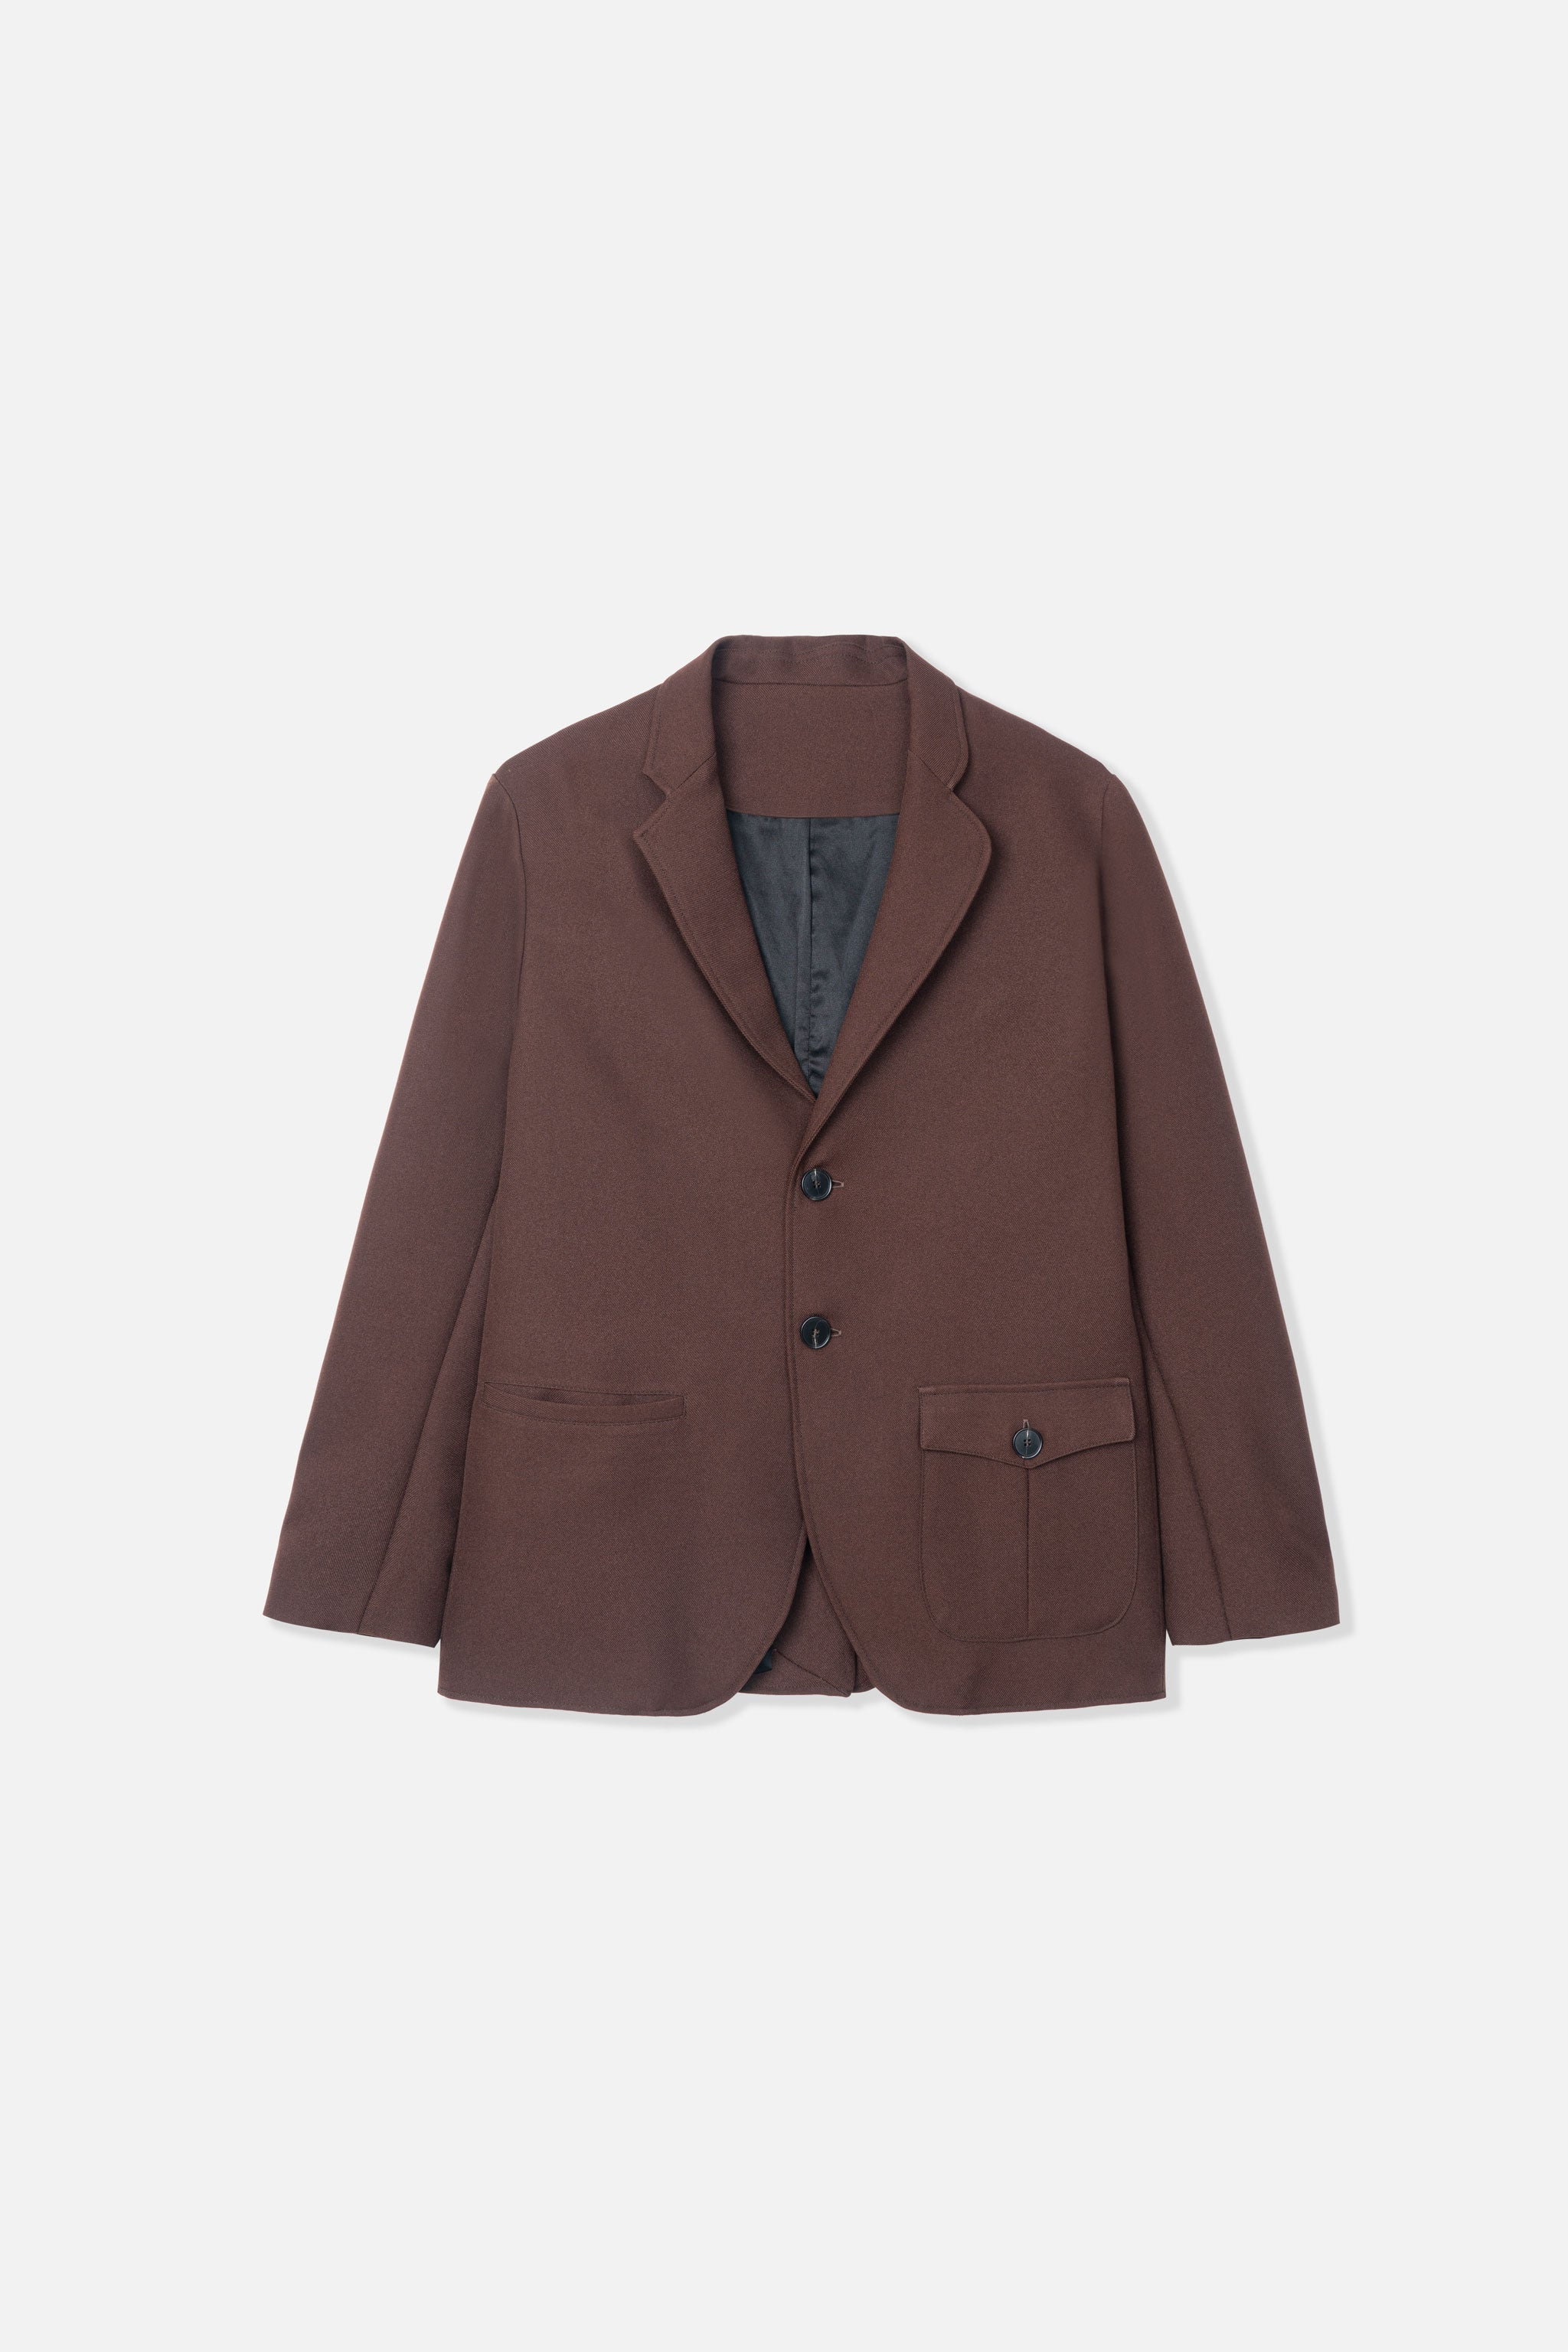 Goodfight Gemini Blazer Brown